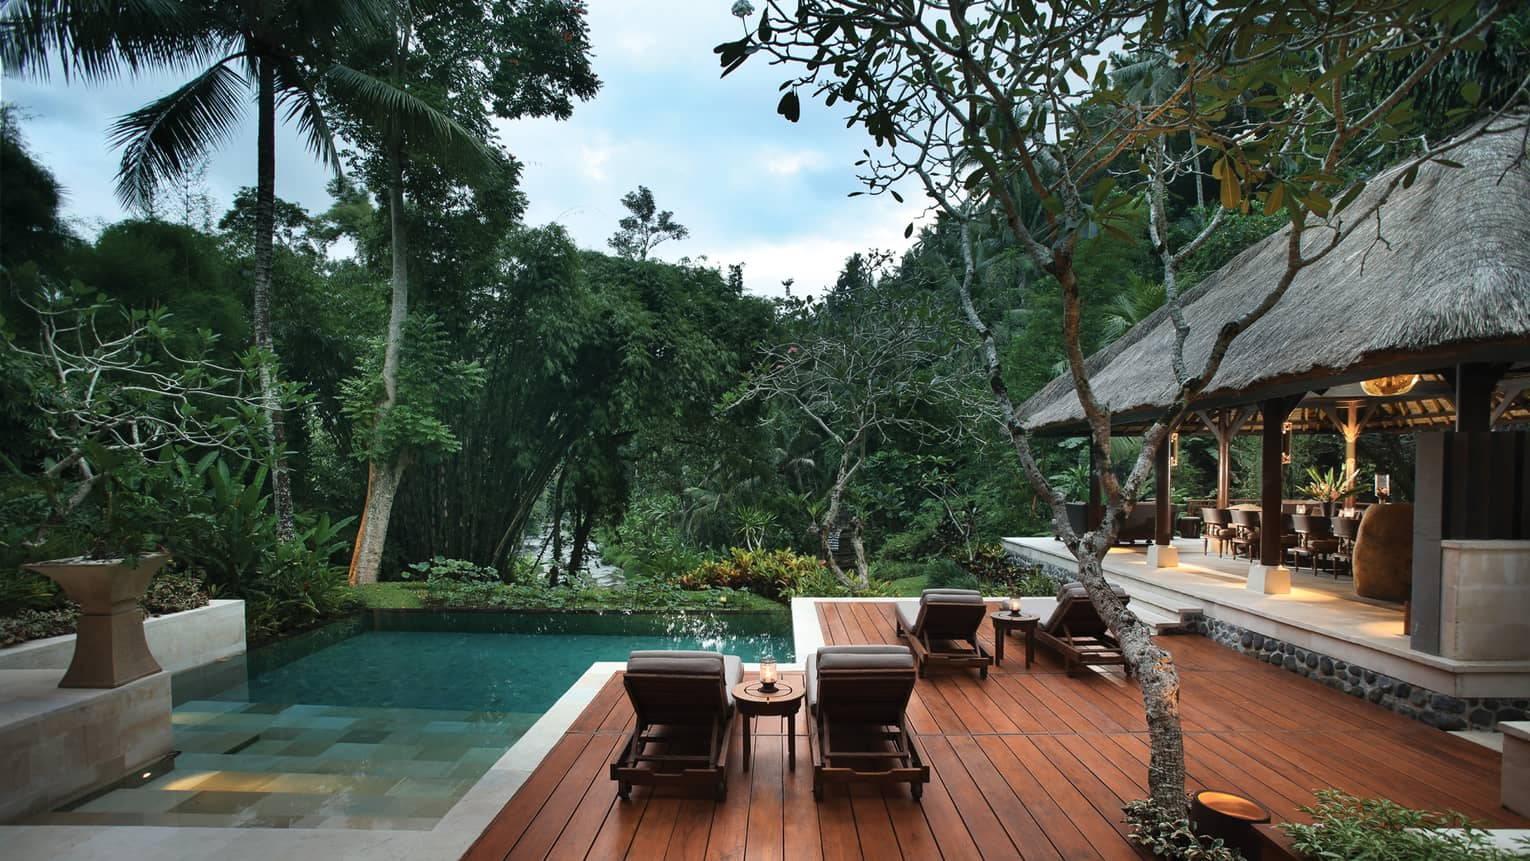 Outdoor patio and pool of the Royal Villa, surrounded by trees, dining room under thatched roof